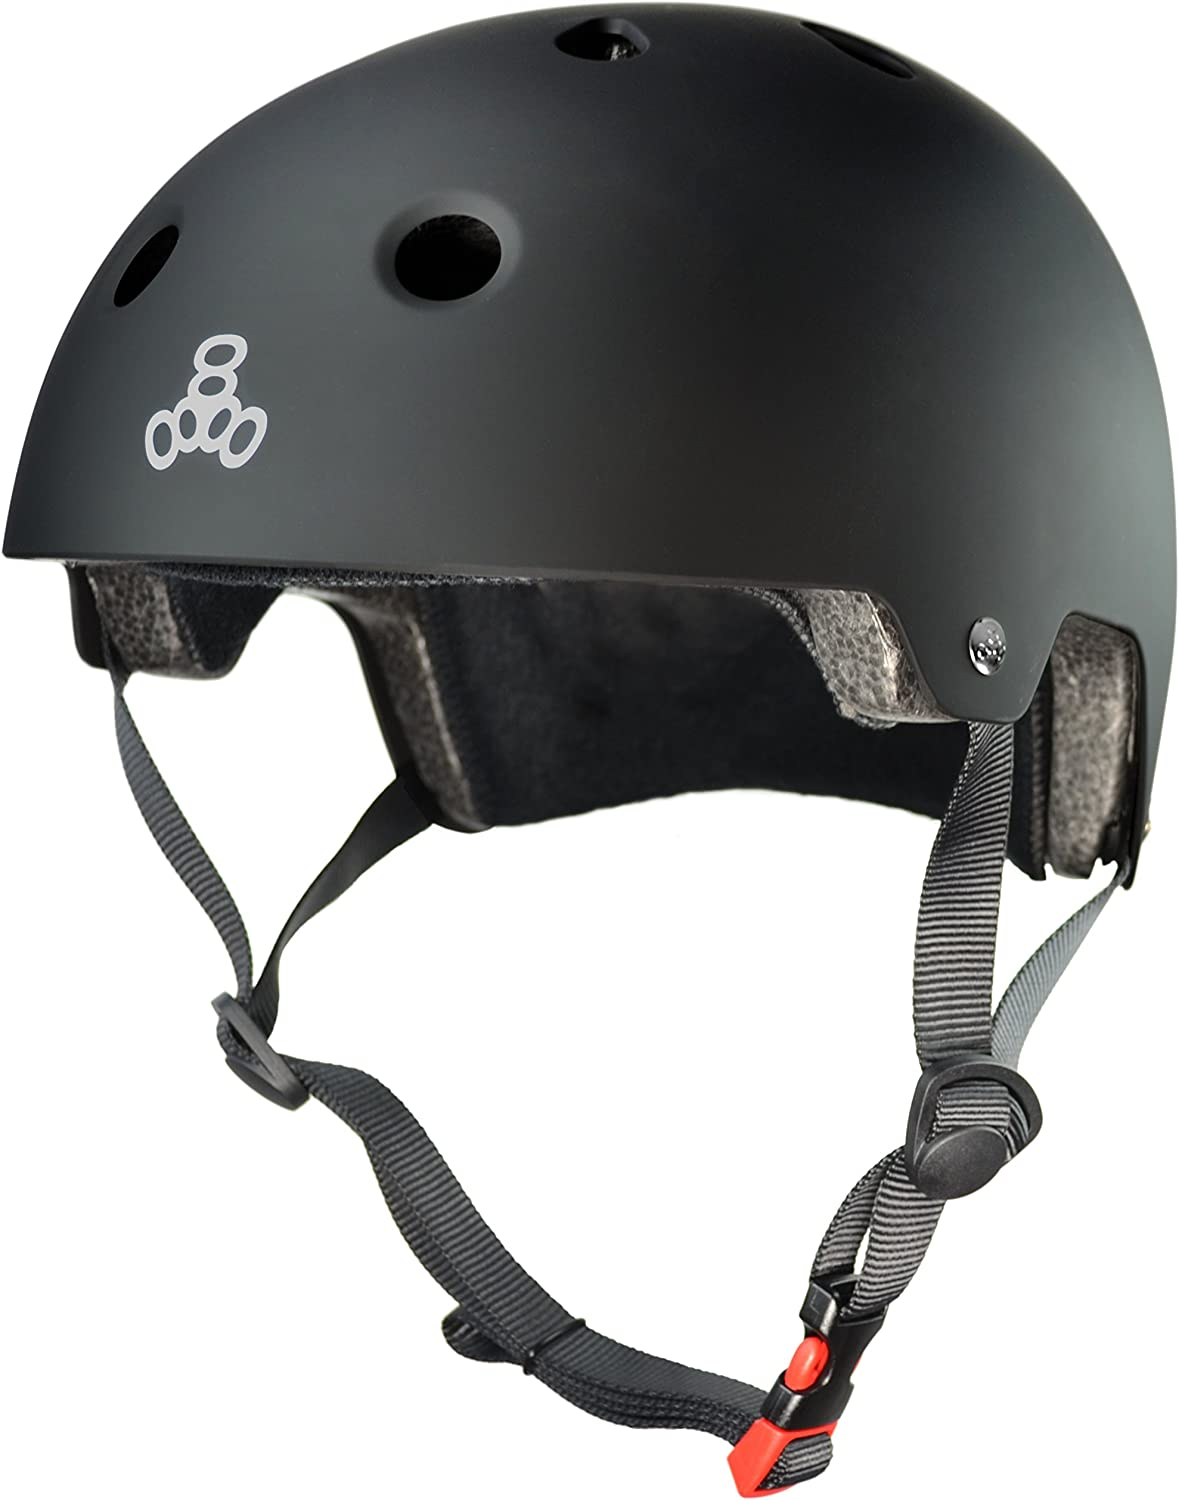 Best Helmet For Electric Scooter 1